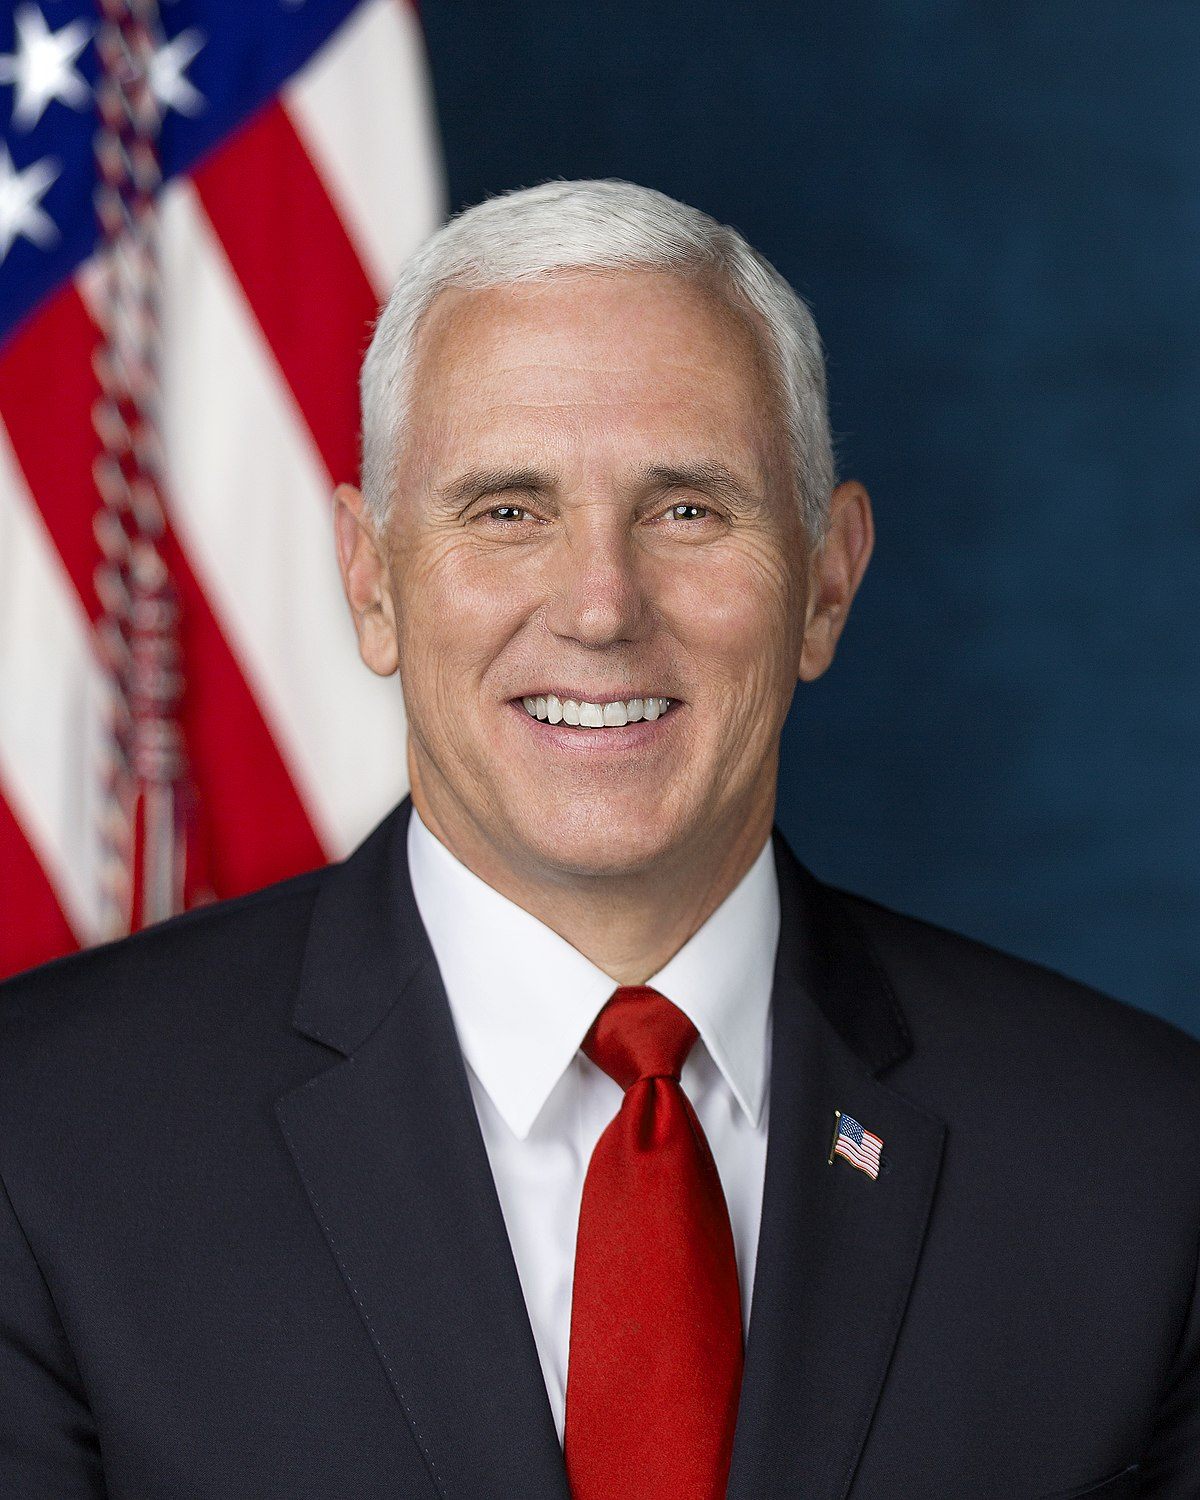 US 2020 Election (CaptainEcho)